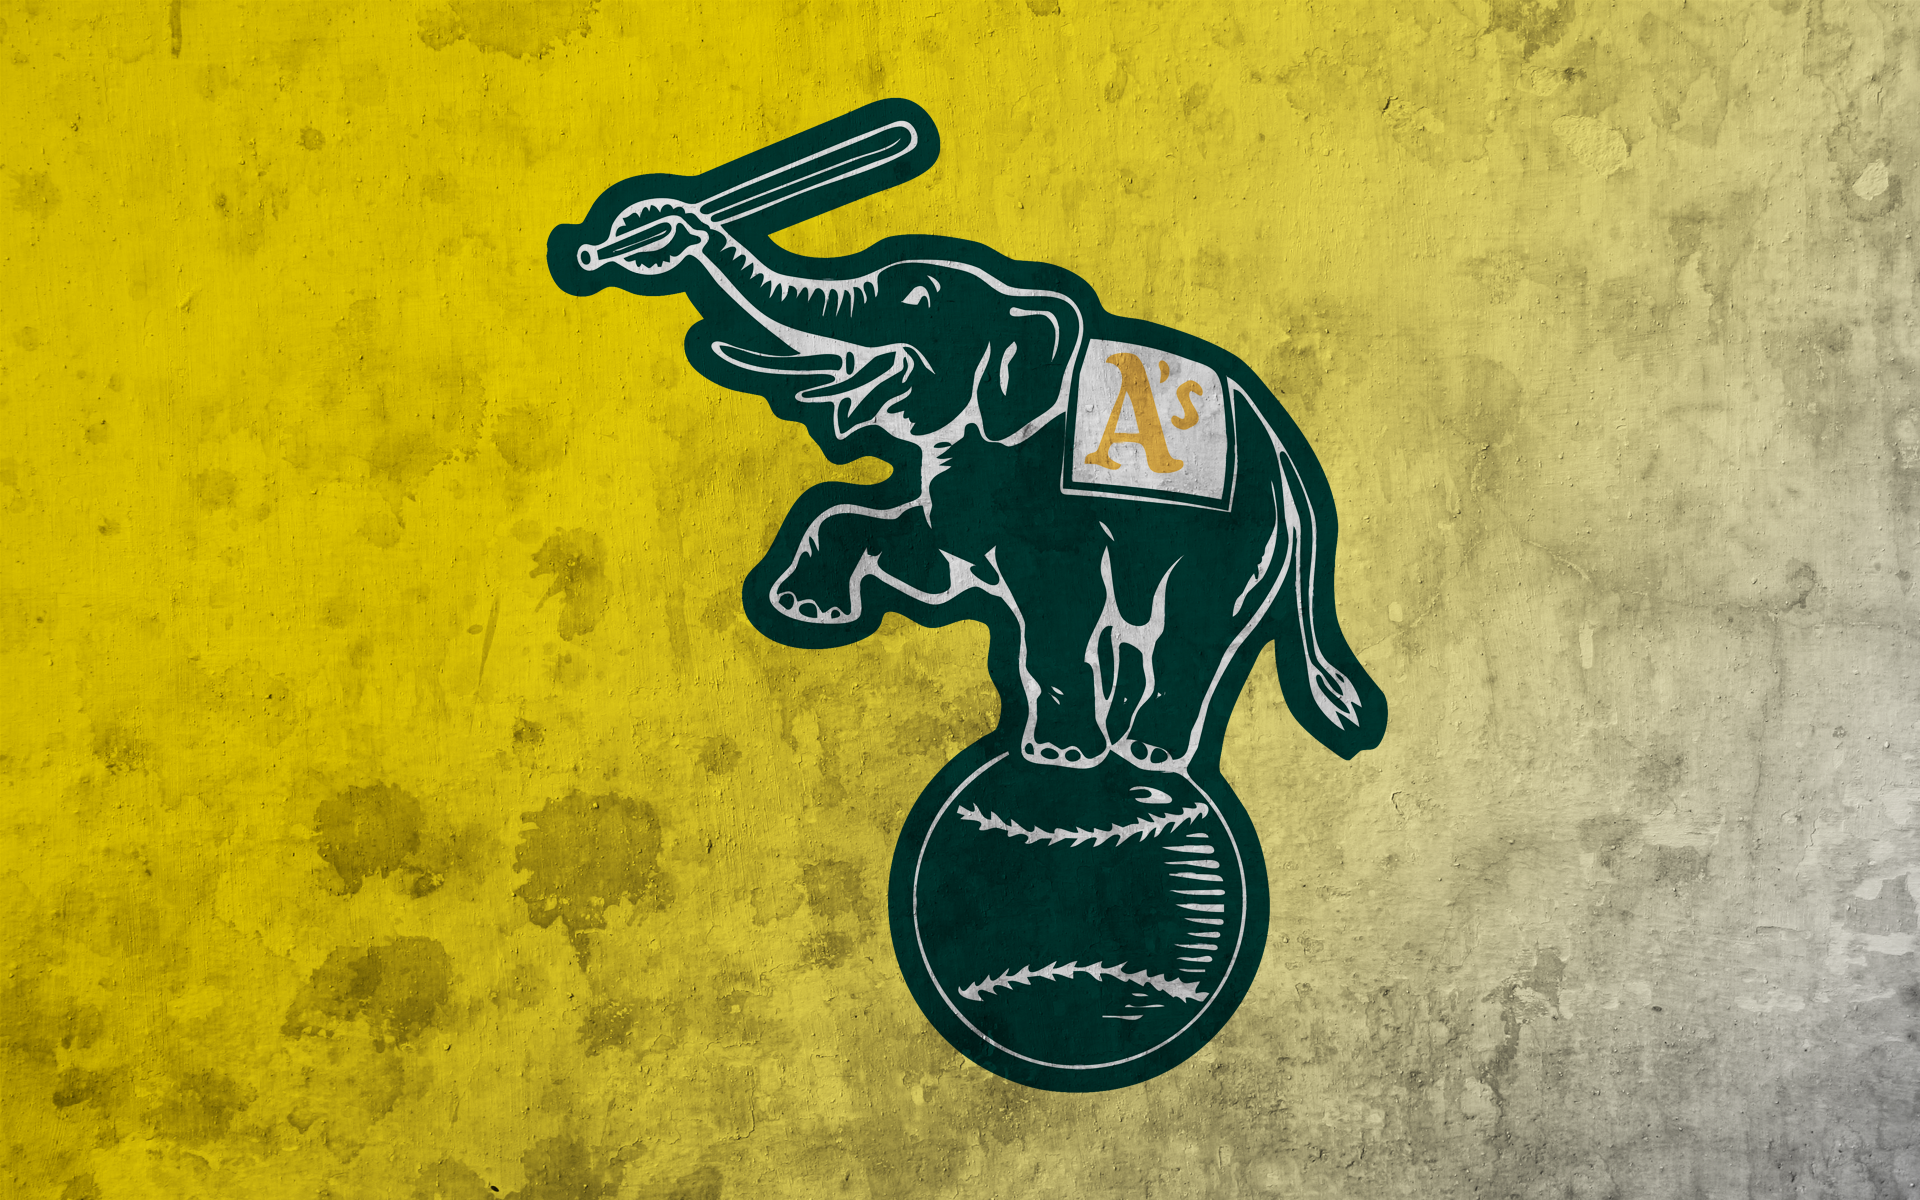 Oakland Athletics Wallpaper 10   1920 X 1200 stmednet 1920x1200